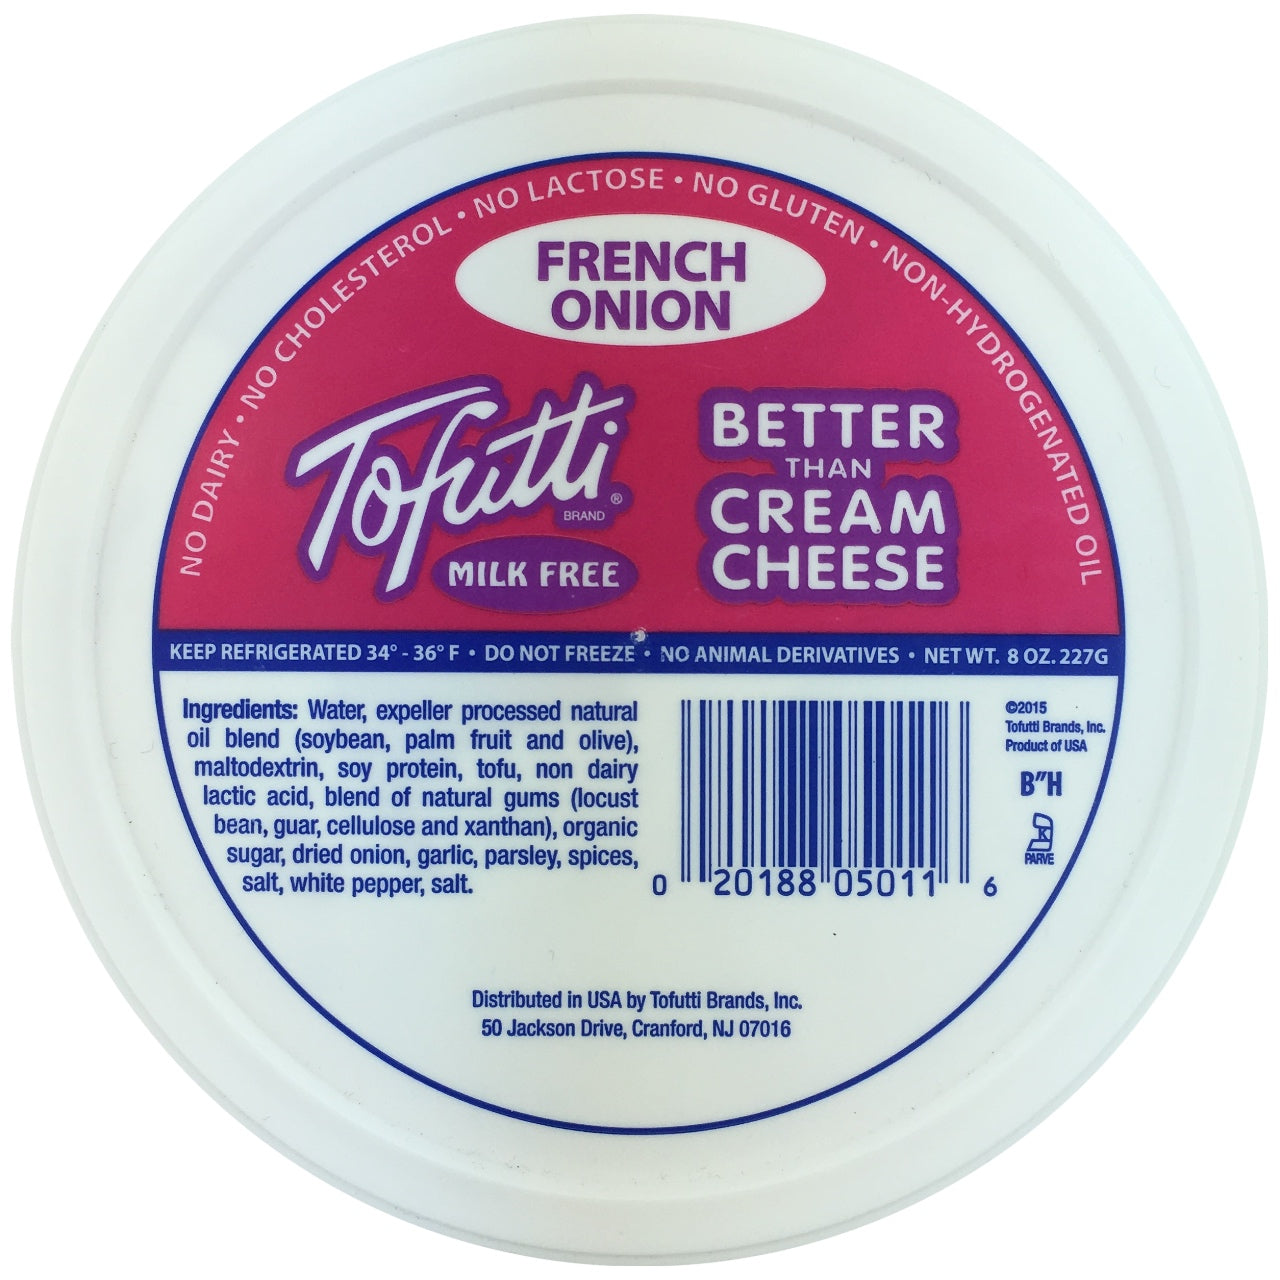 Tofutti Better than Cream Cheese - French Onion